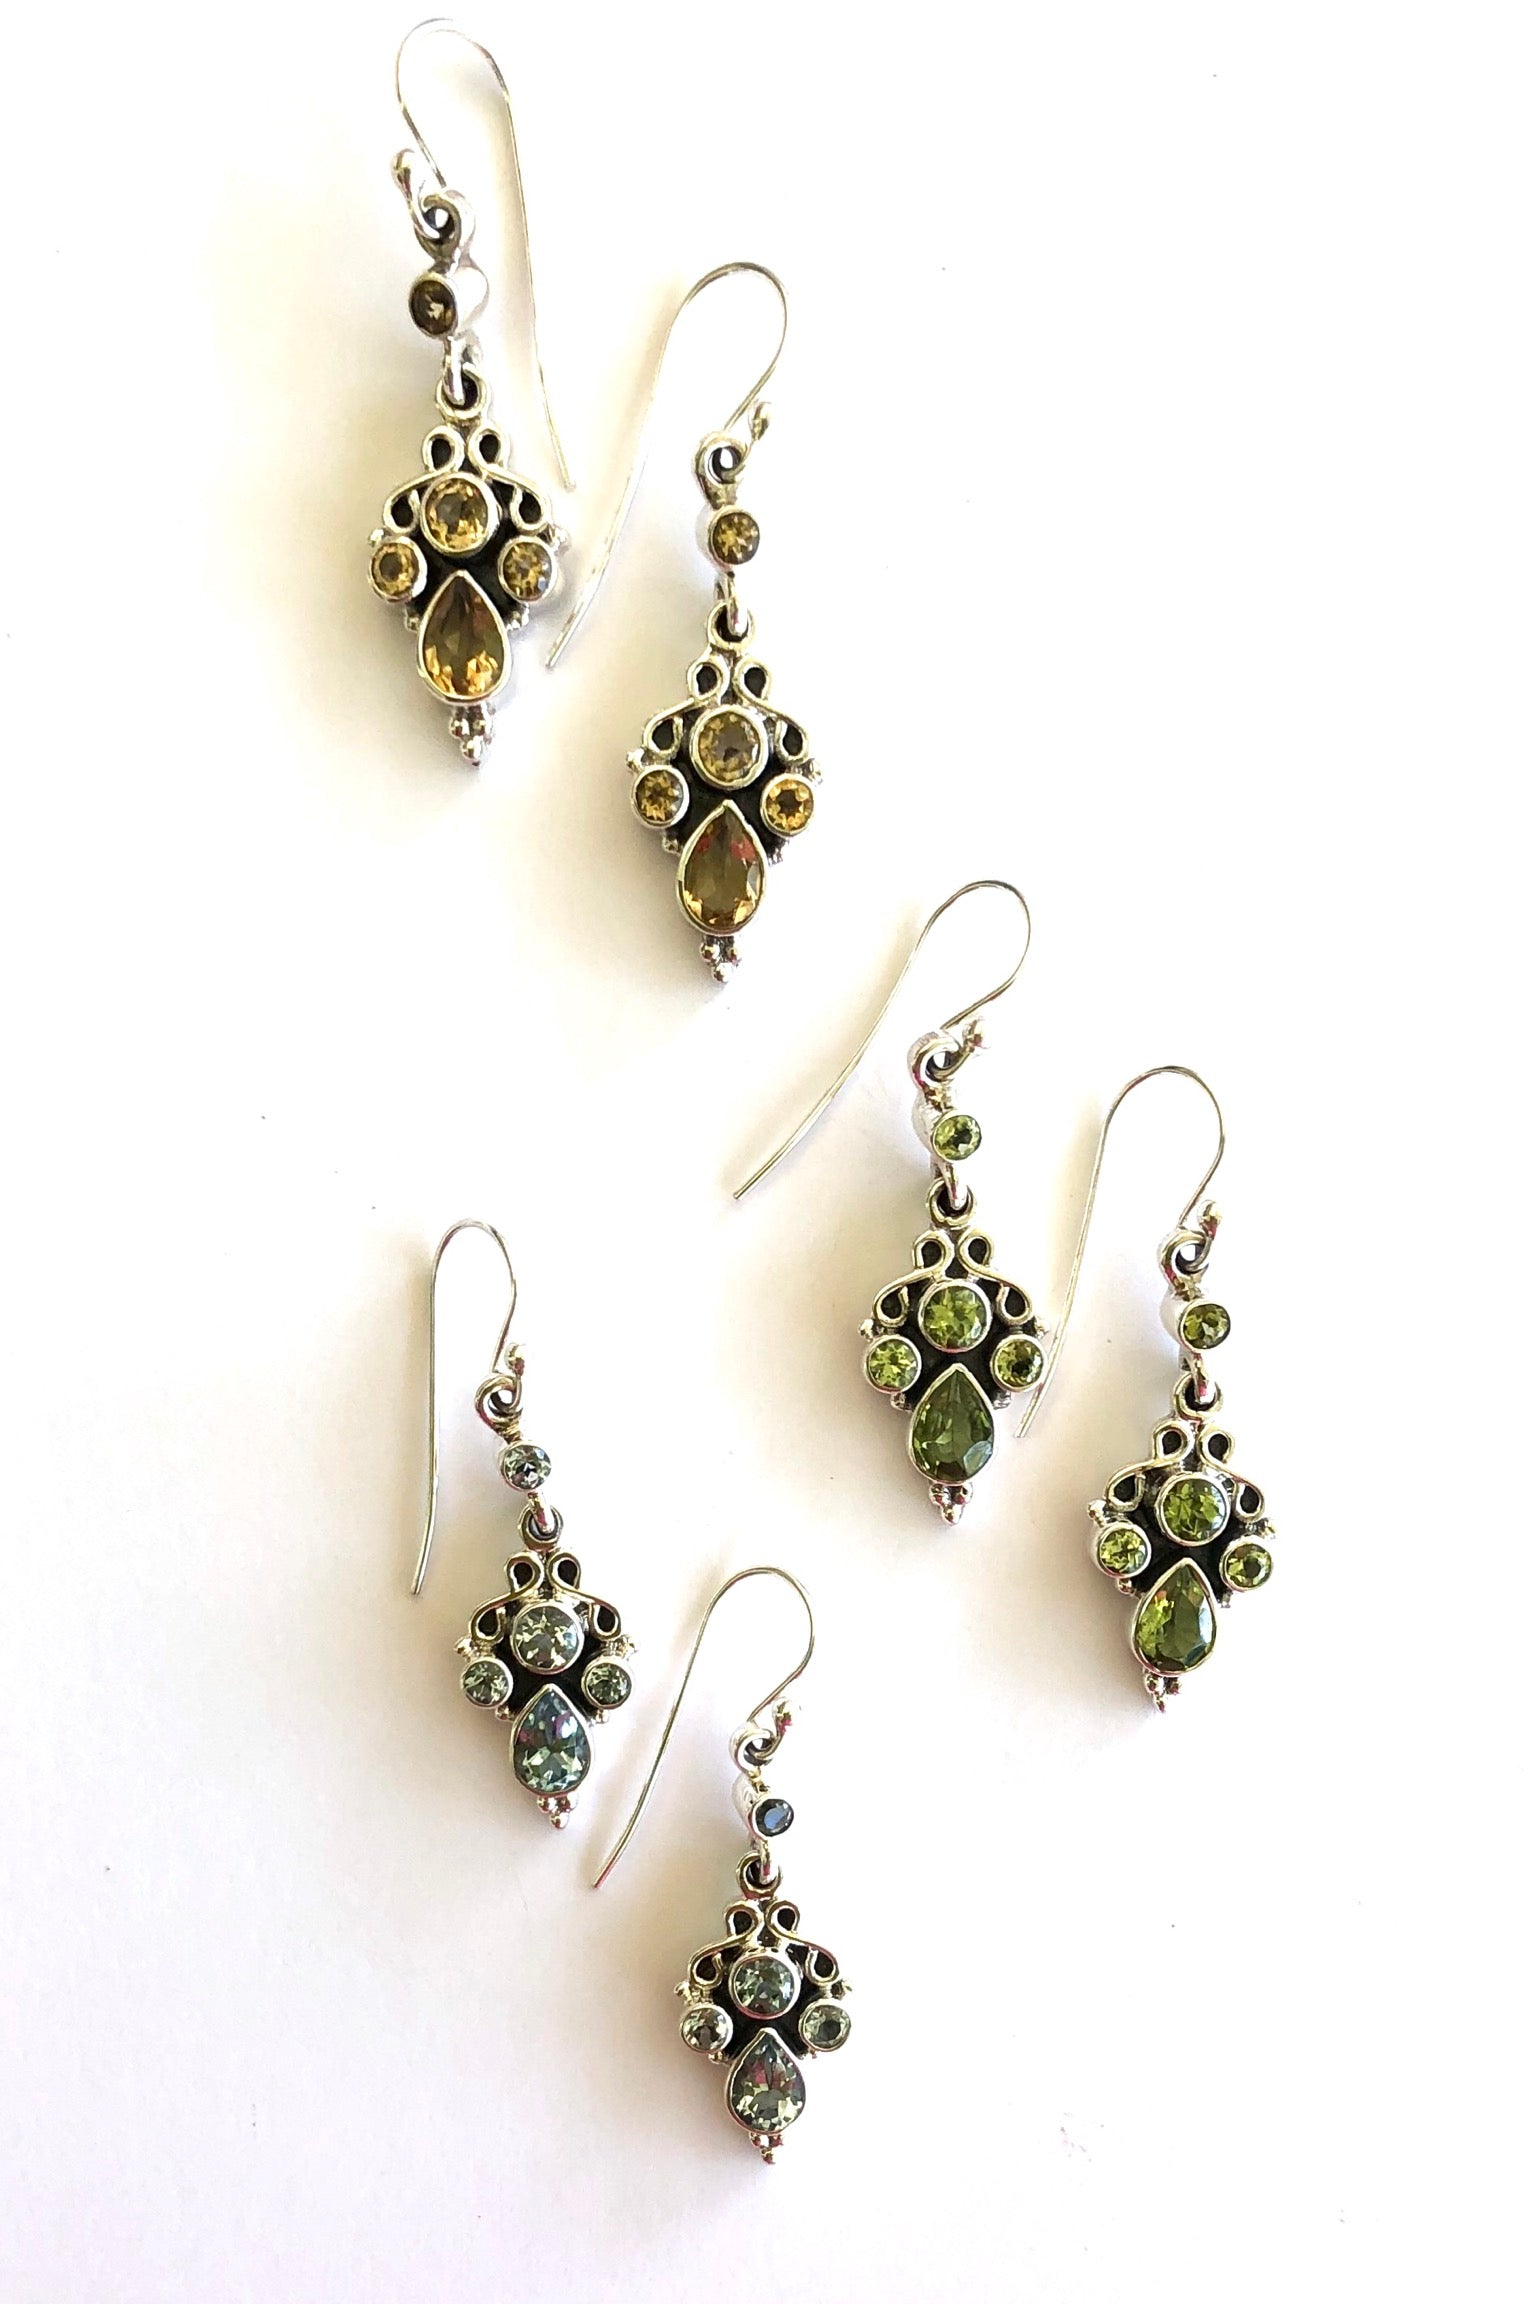 Summer Flowers in an earring, a pretty arrangement of gemstones, five faceted and sparkling stones set in 925 silver.